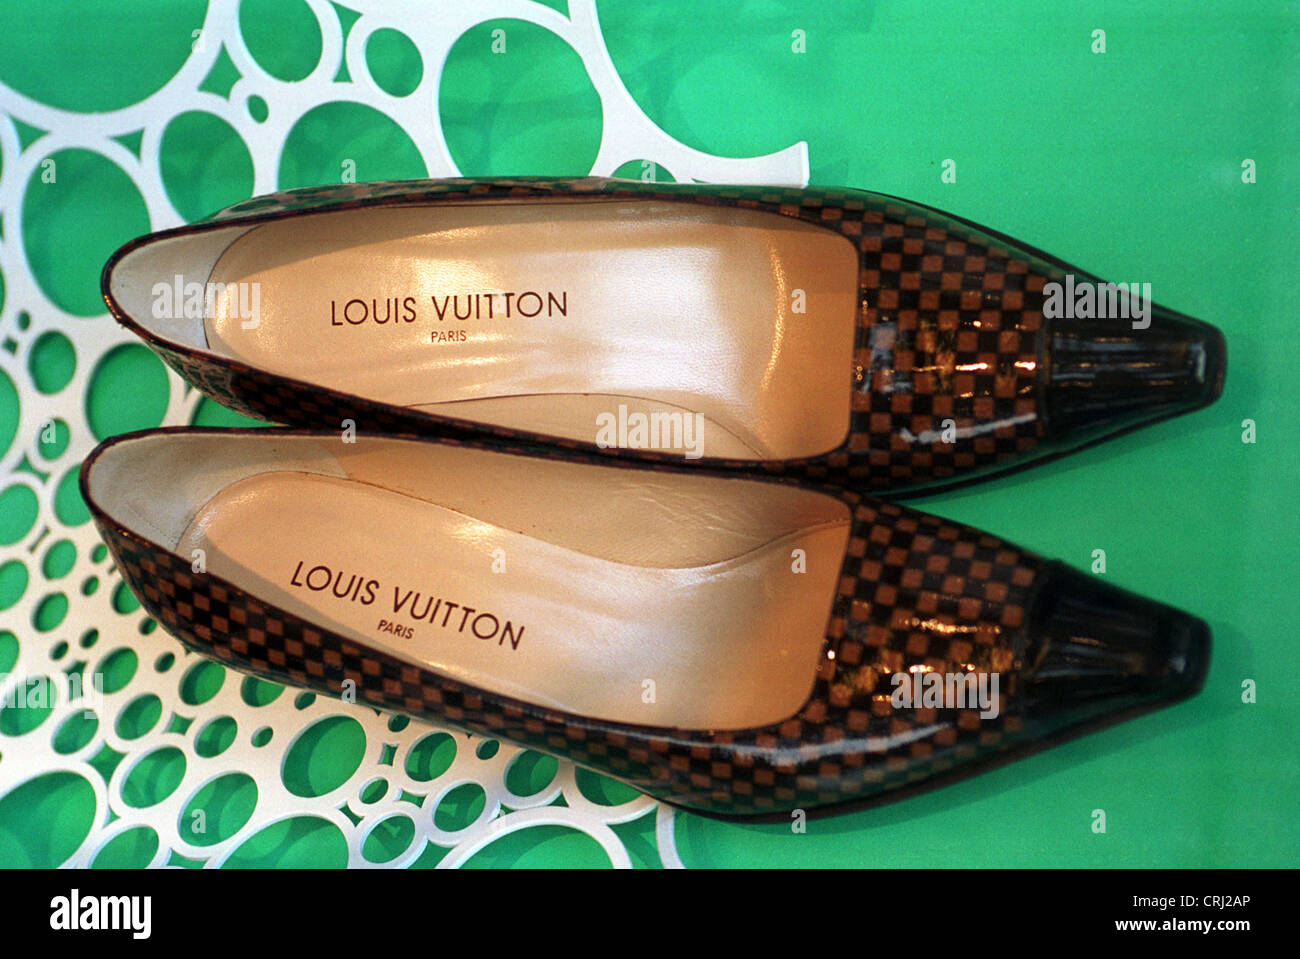 8afcb432ba Louis Vuitton Shoes Immagini & Louis Vuitton Shoes Fotos Stock - Alamy